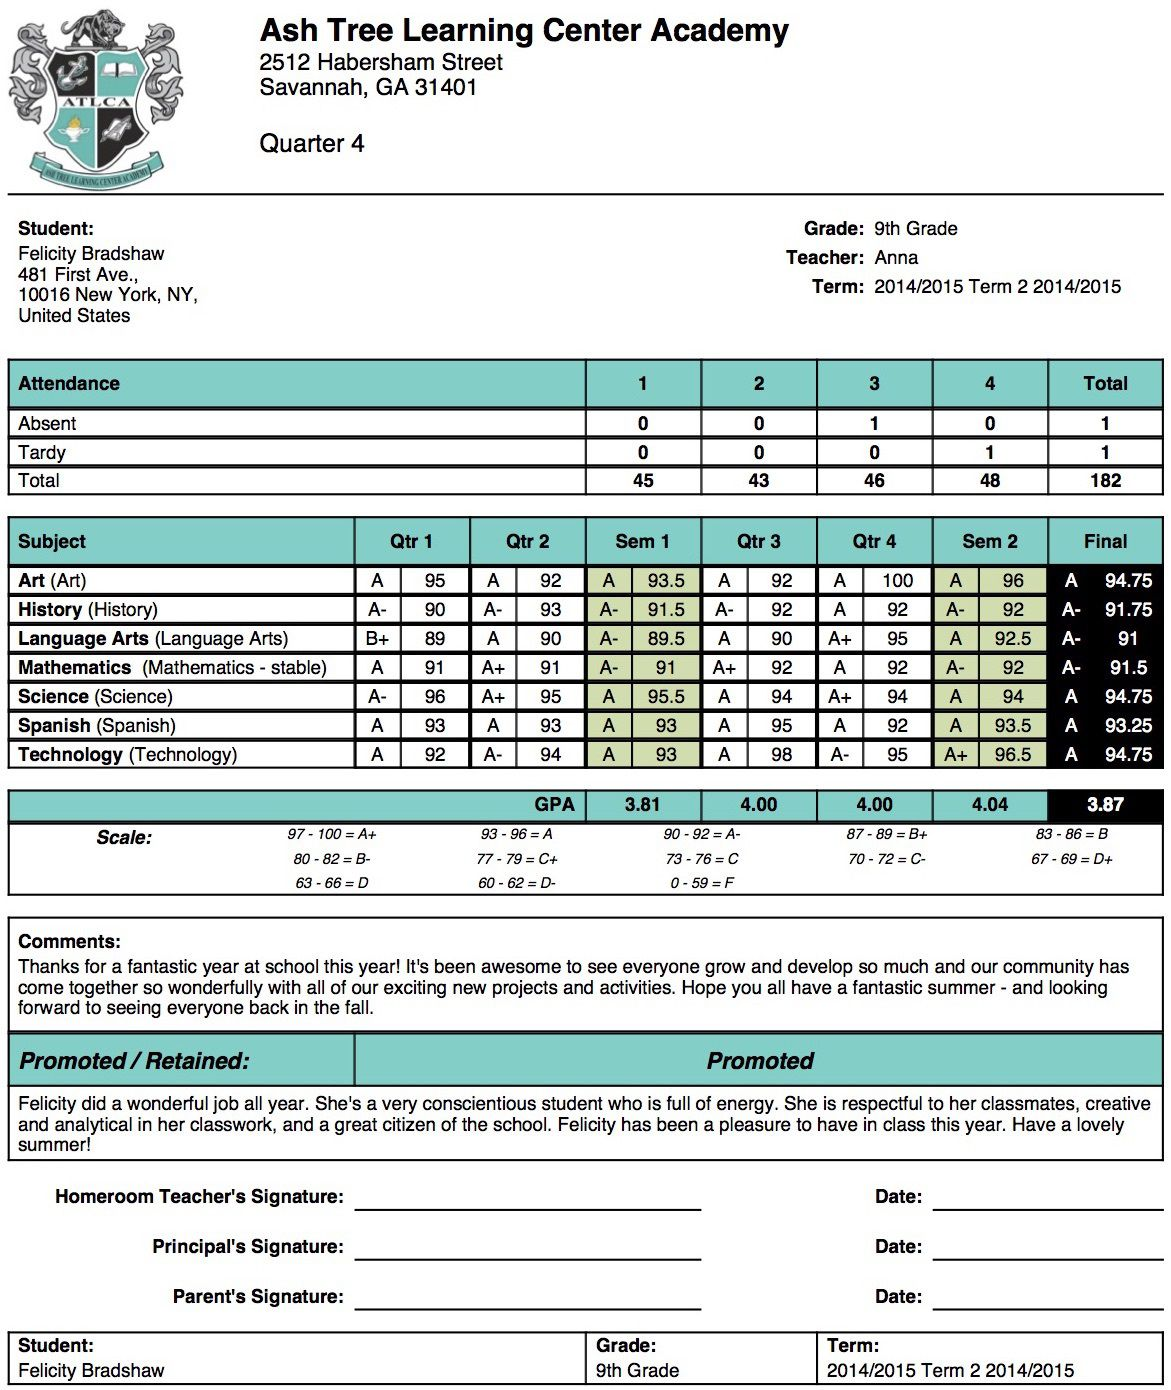 006 Awesome Middle School Report Card Template Free Inspiration Full